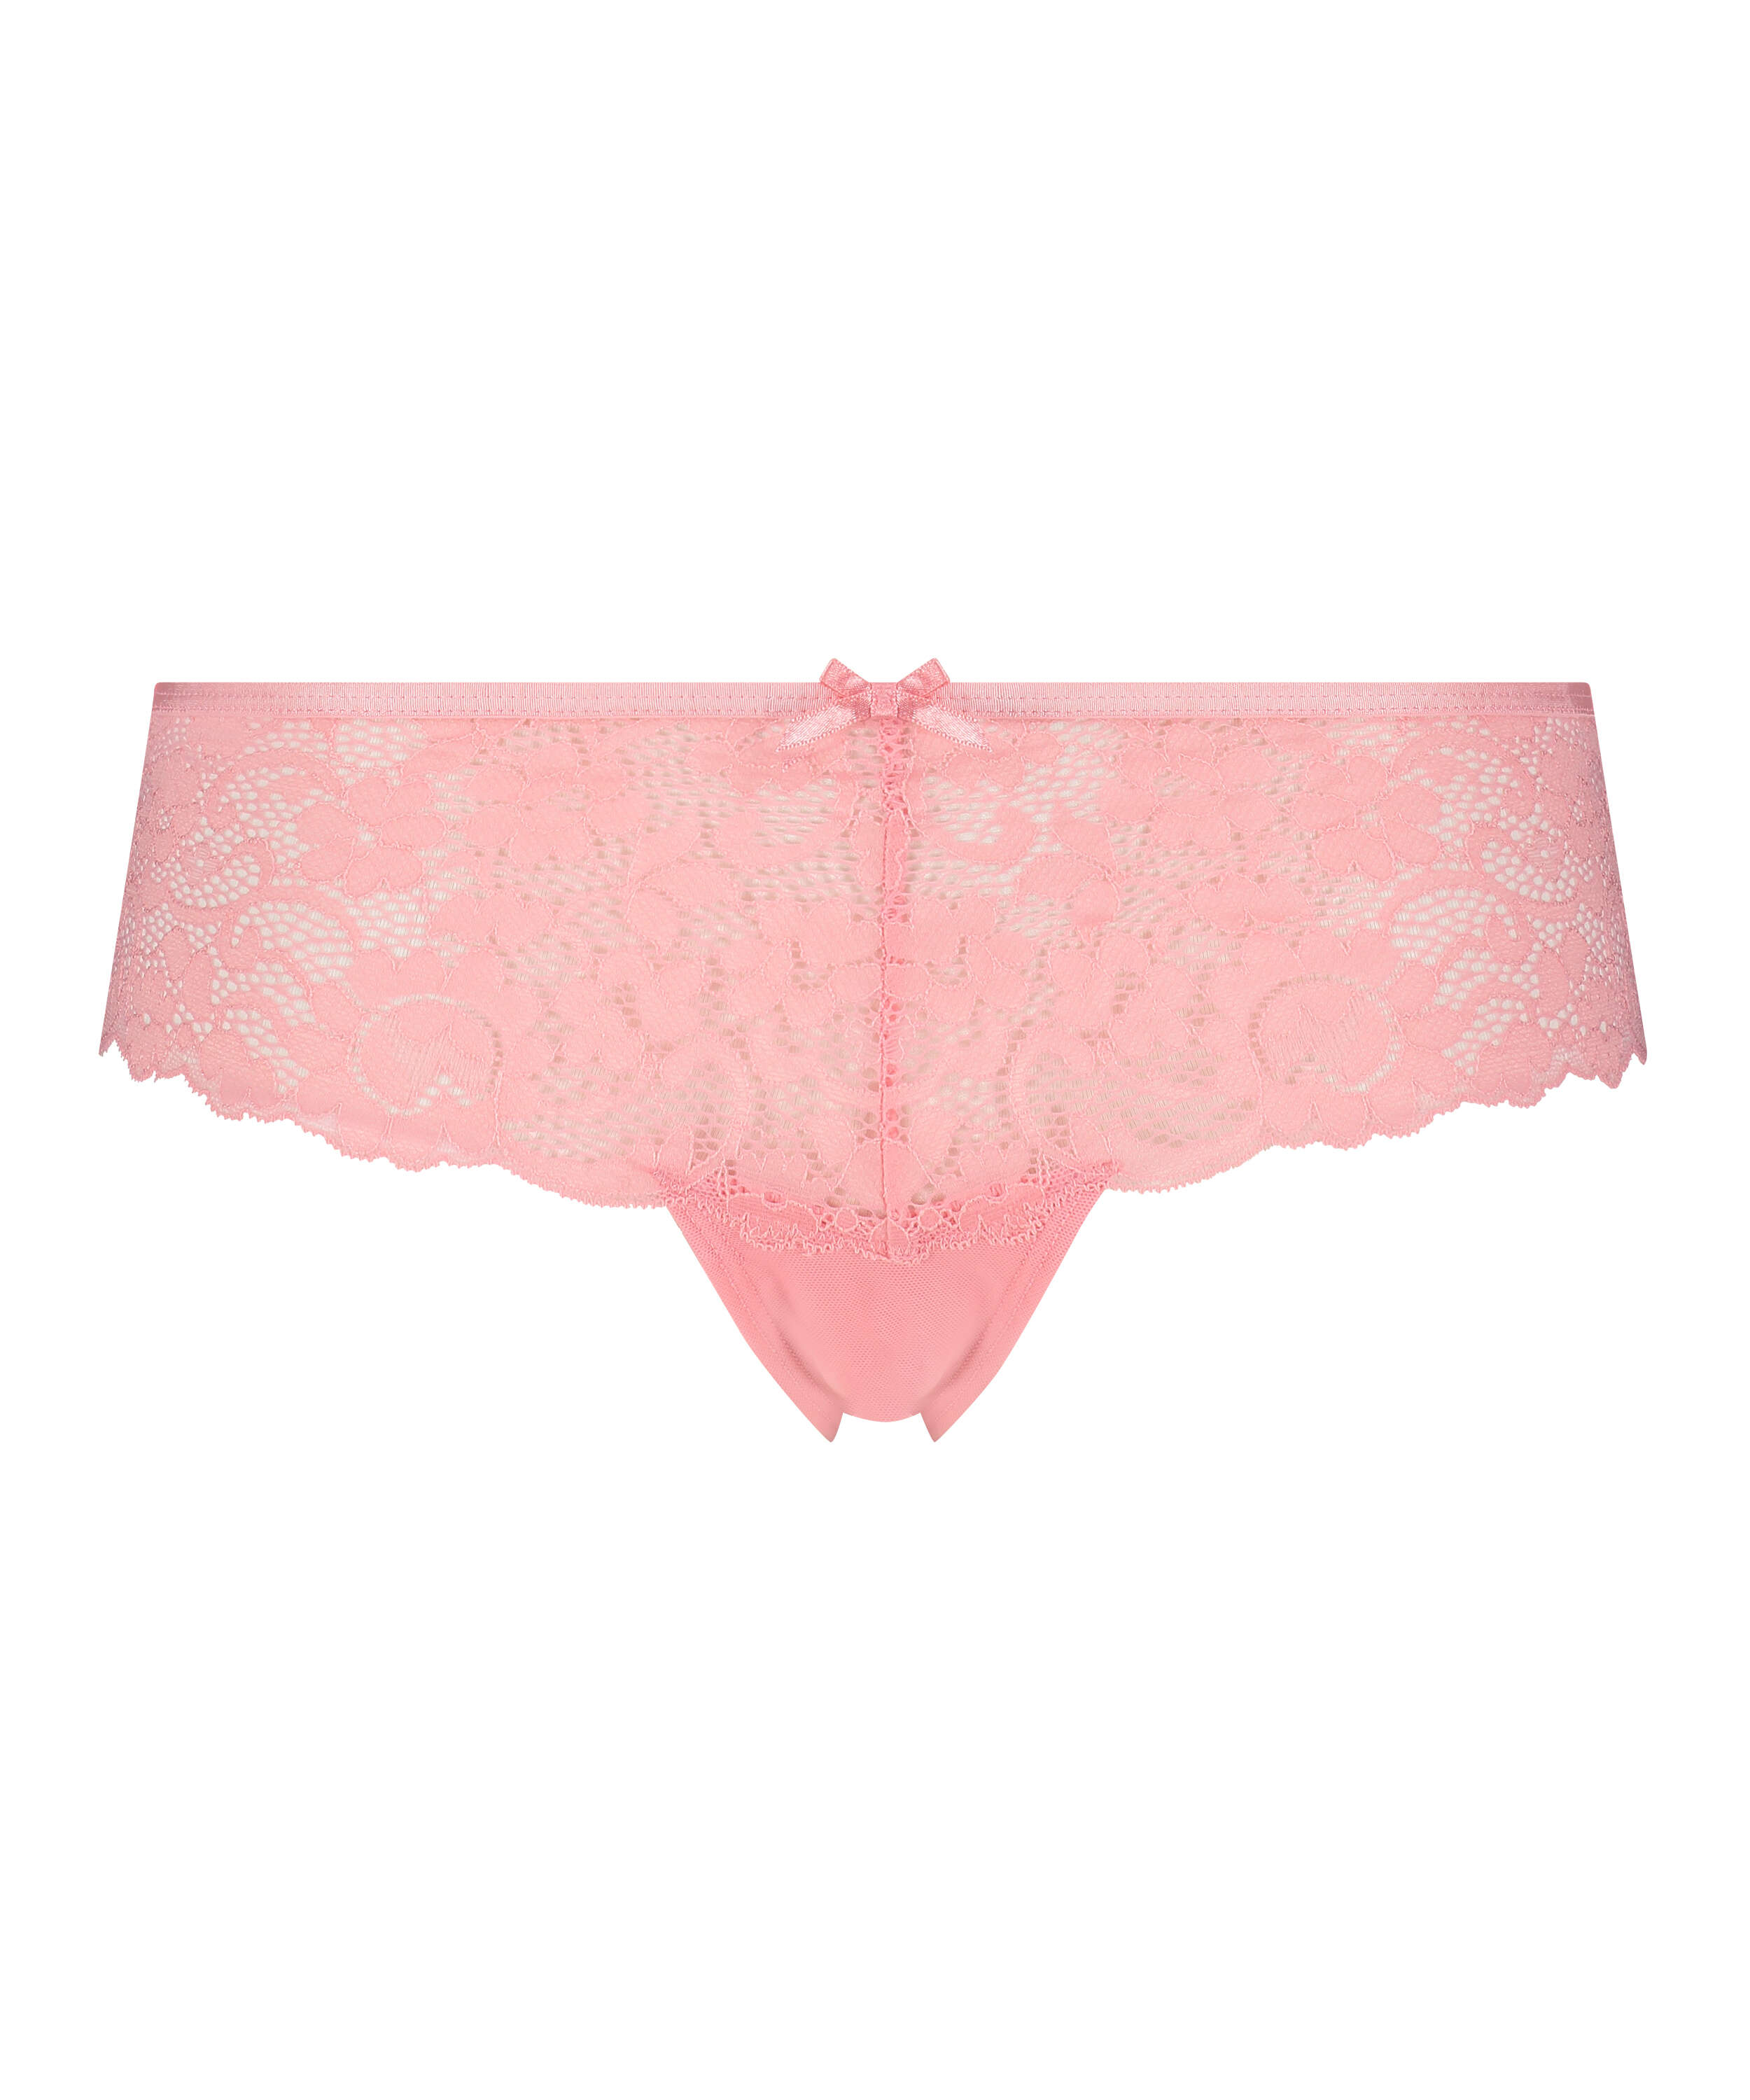 Mia Brazilian Shorts, Pink, main